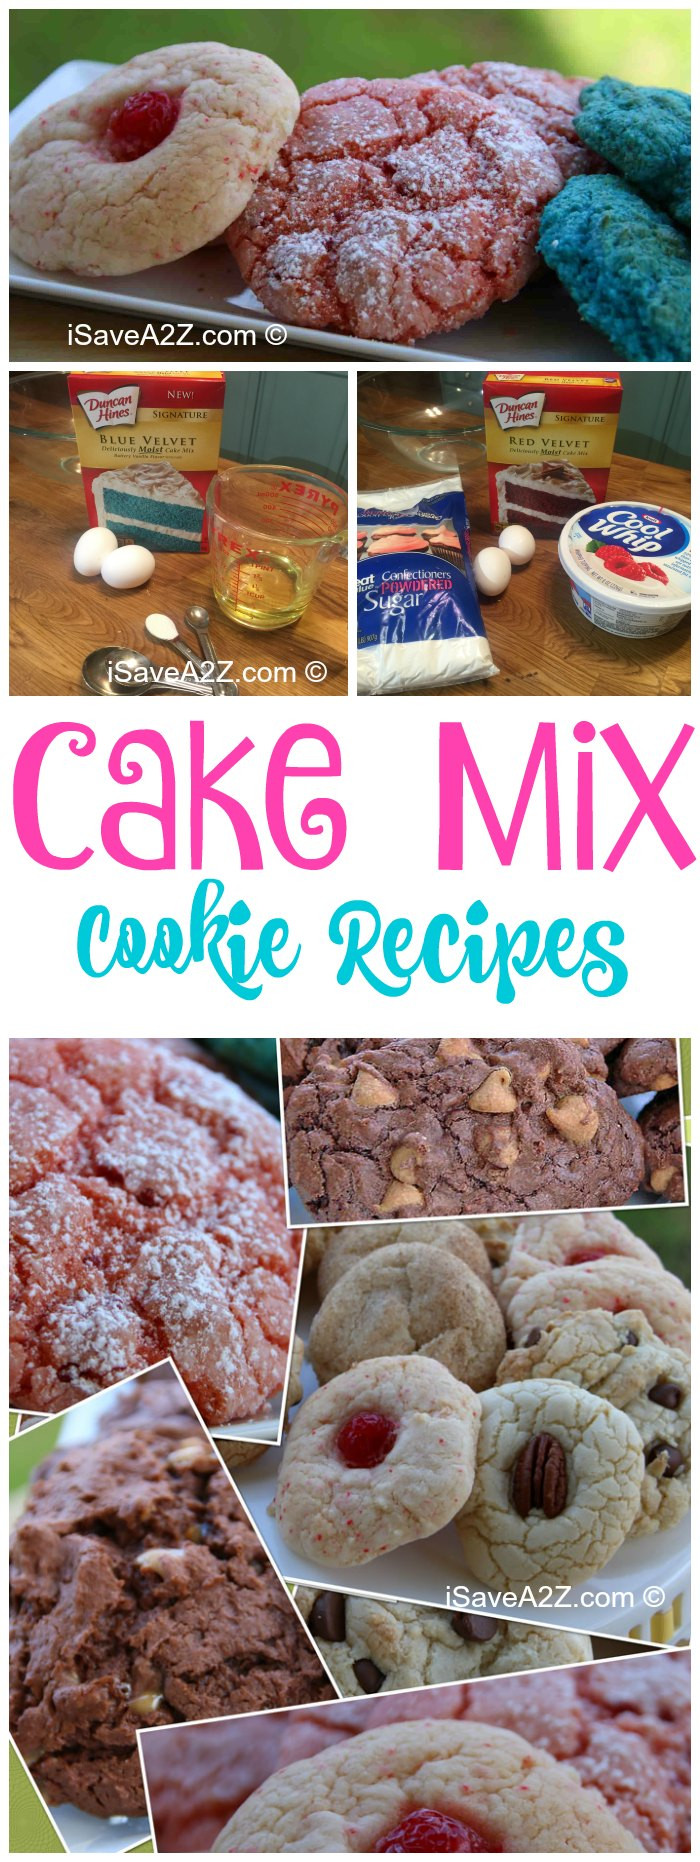 Cake Mix Cookie Recipes  Top 45 Recipe Variations for Cake Mix Cookies iSaveA2Z